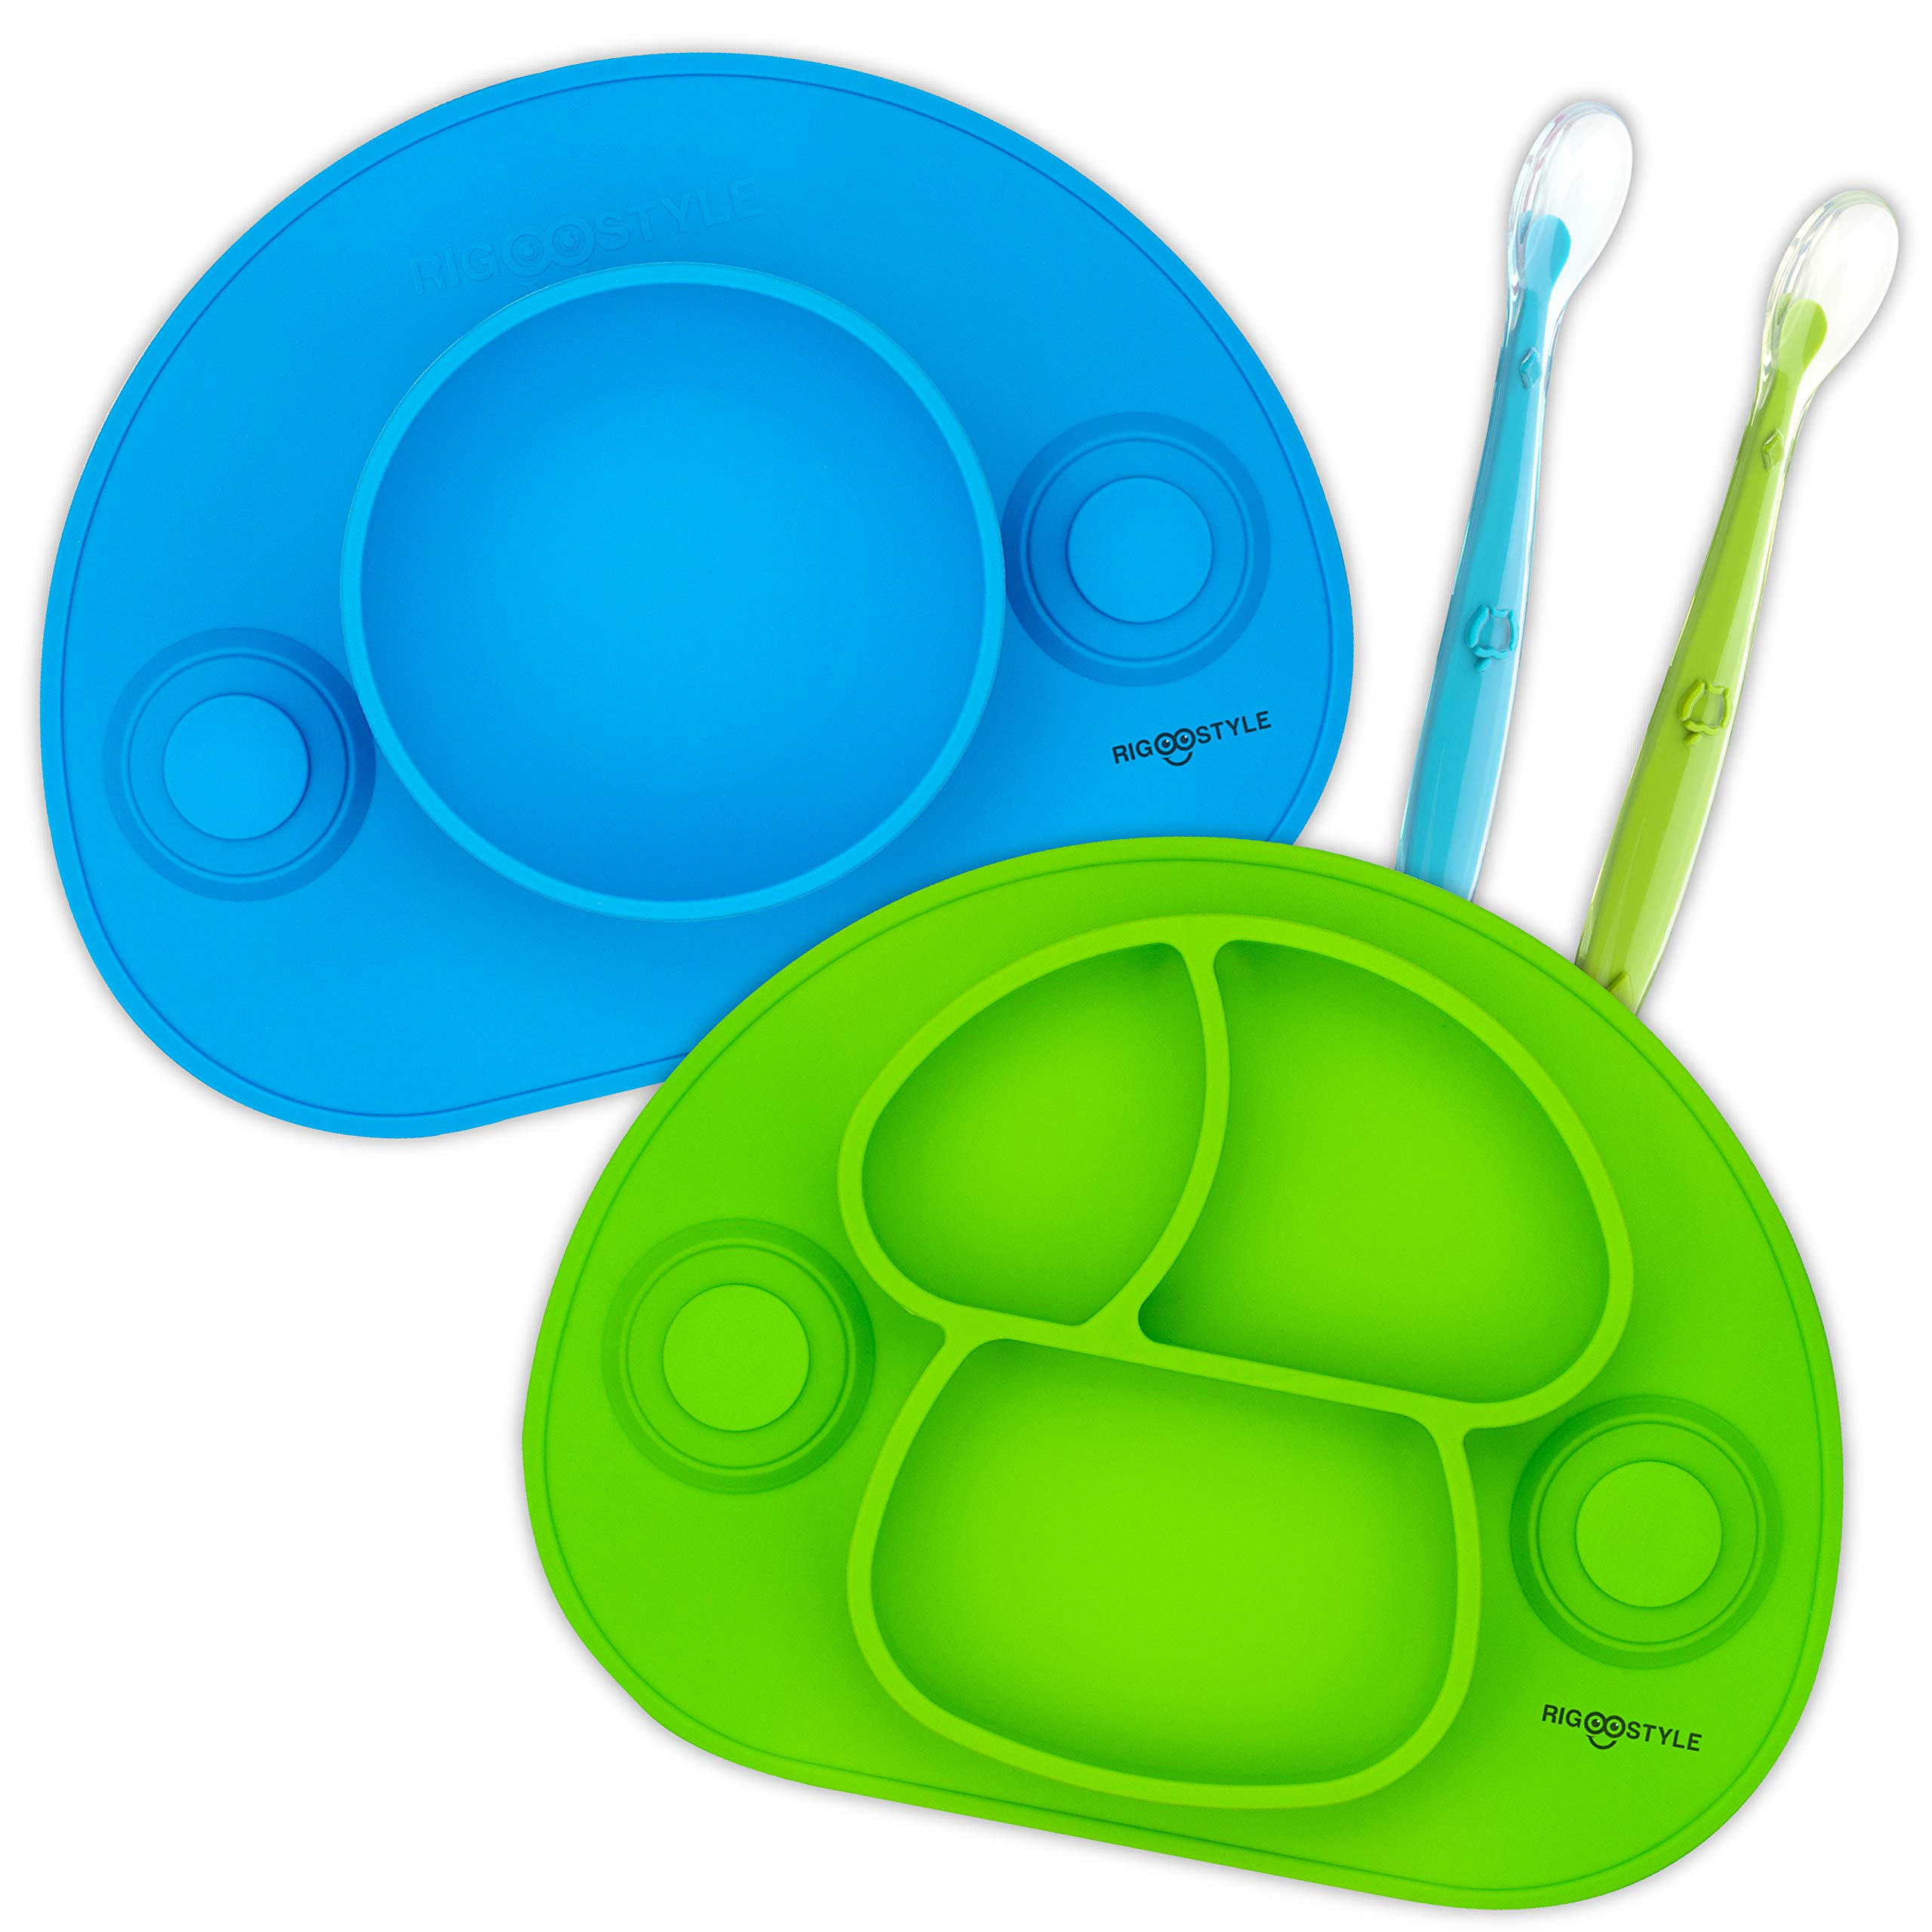 RIGSTYLE Silicone Feeding Set: Divided Plate and Bowl Placemats with Suction Cups Plus 2 Spoons, for Babies, Toddlers and Kids (Blue/Green) by RIGSTYLE